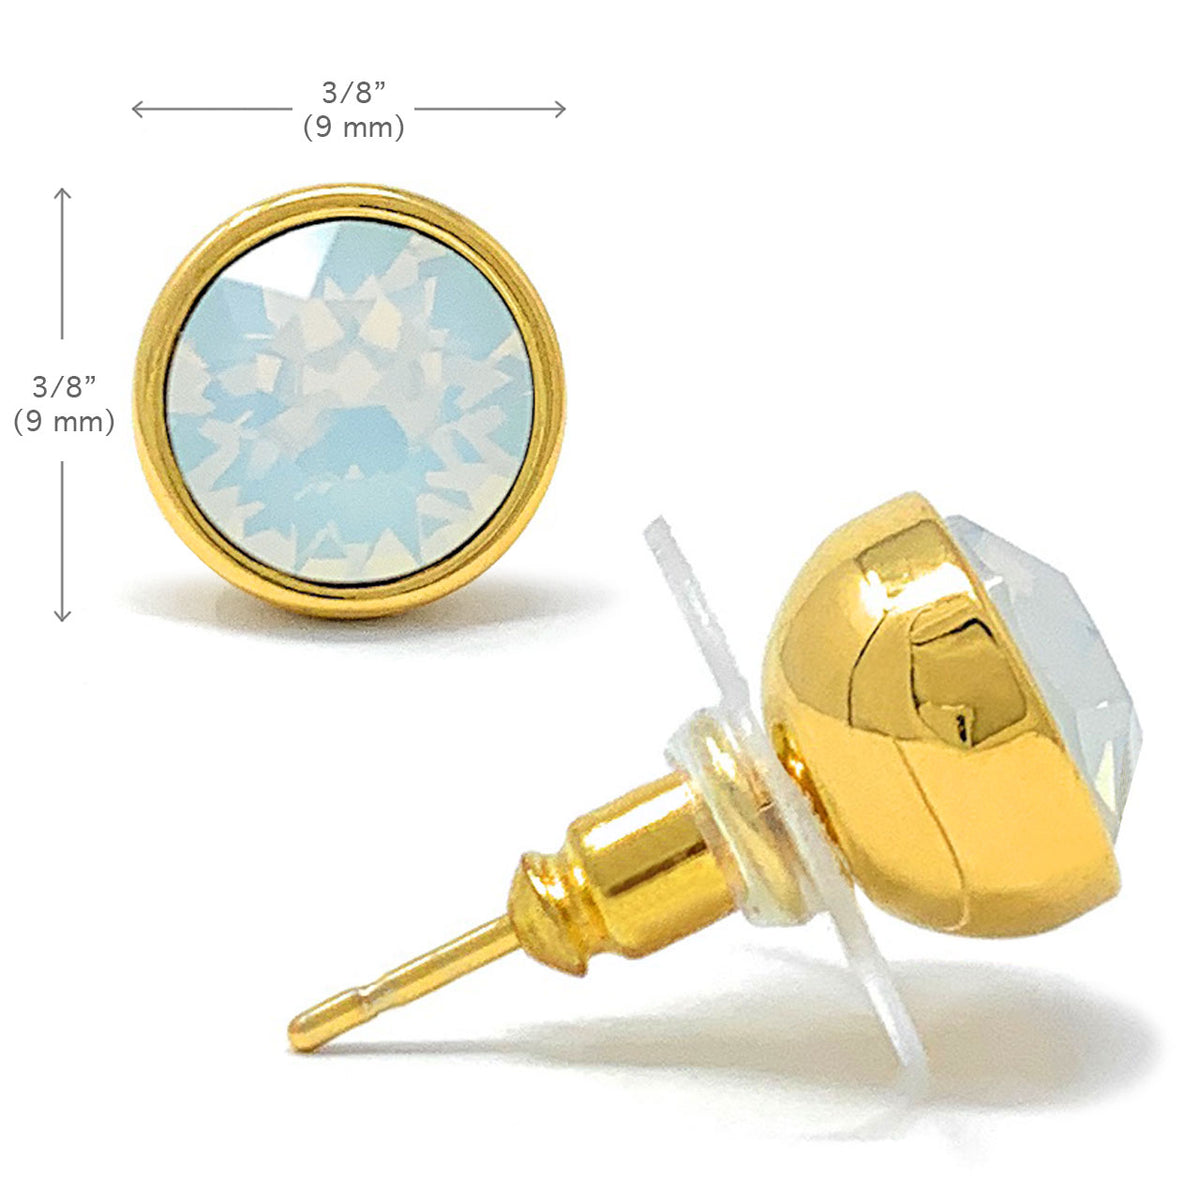 Harley Stud Earrings with Ivory White Round Opals from Swarovski Gold Plated - Ed Heart